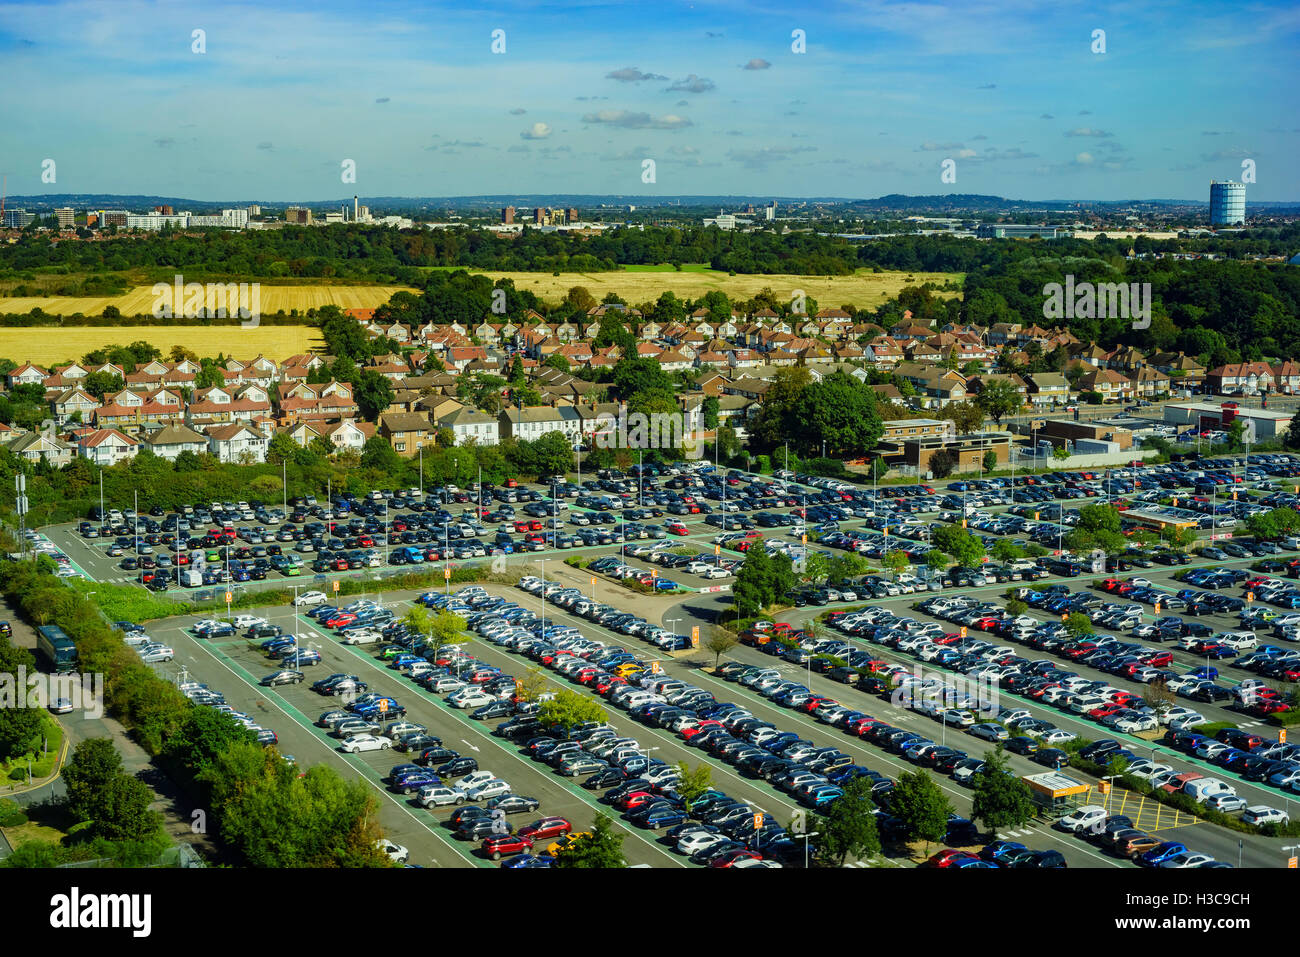 Aerial view of a parking place near Heathrow of London, United Kingdom - Stock Image